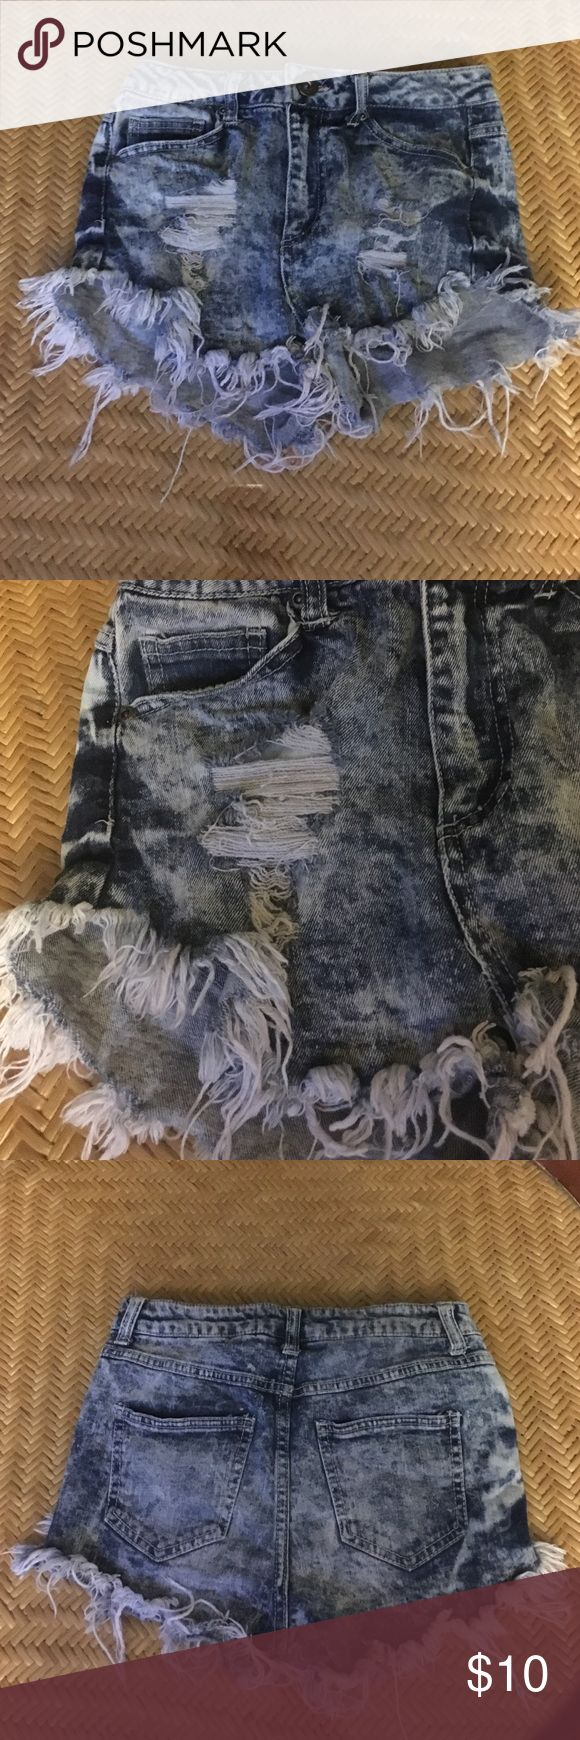 High rise cut off jean shorts size 1 (25) High rise cut off jean shorts size 1 (25). Has four pockets altogether, with a ripped, cut off style to them. Rewash Shorts Jean Shorts